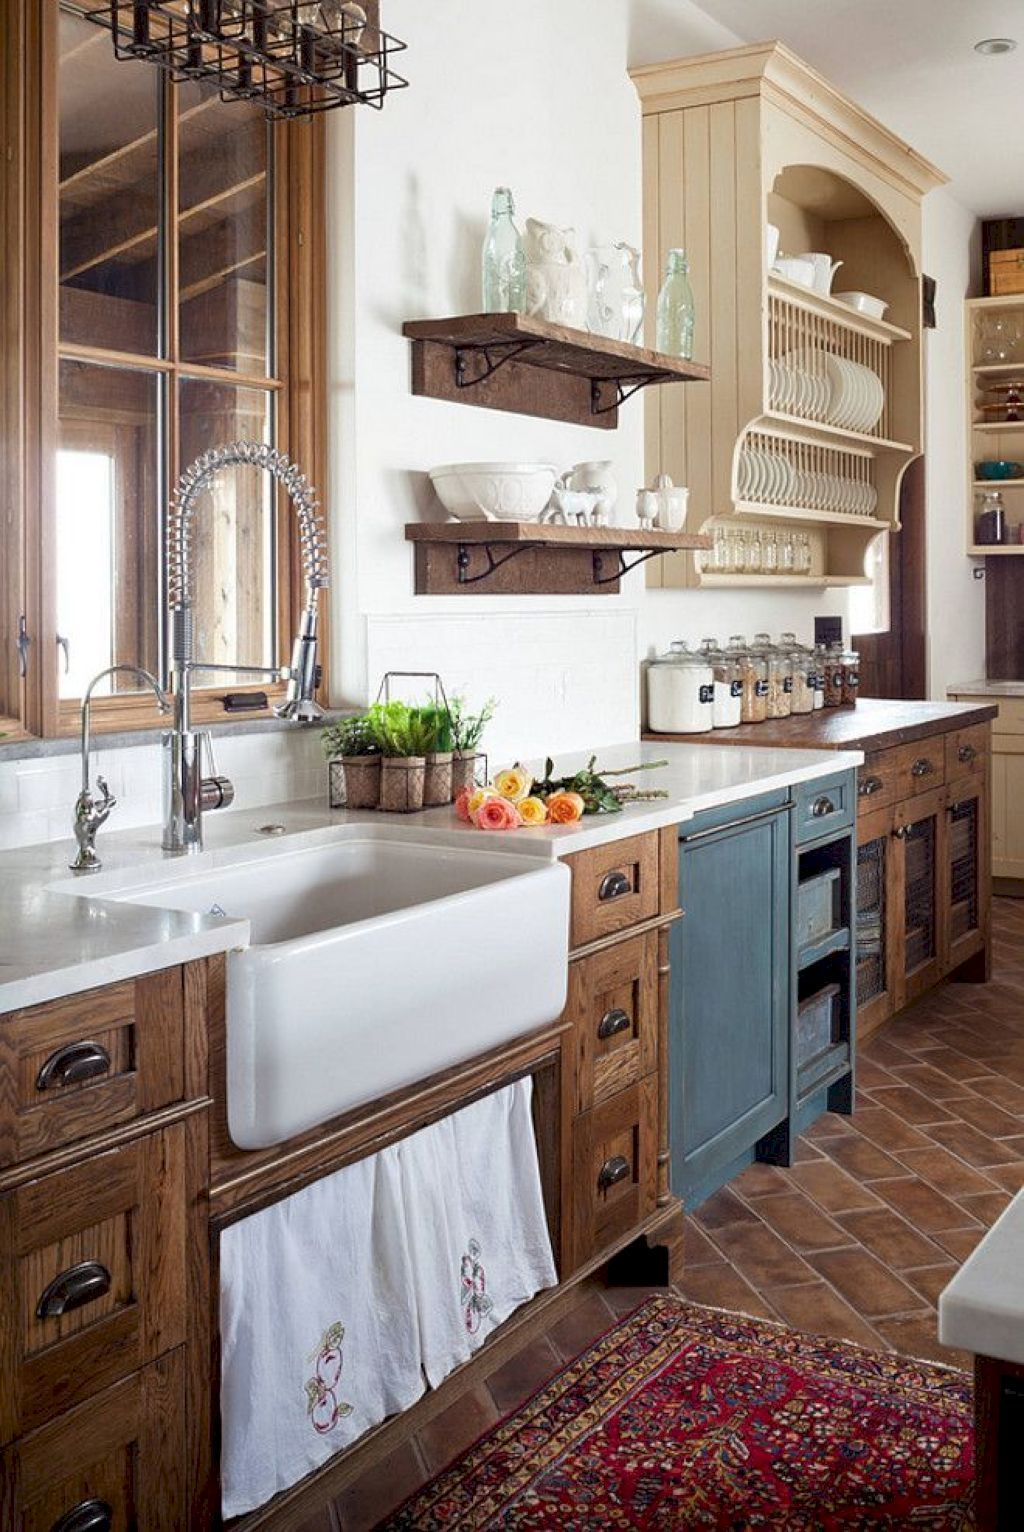 4 Marvelous Kitchen Remodeling Choosing A New Kitchen Sink Ideas Rustic Kitchen Cabinets Kitchen Cabinet Design Farmhouse Kitchen Decor